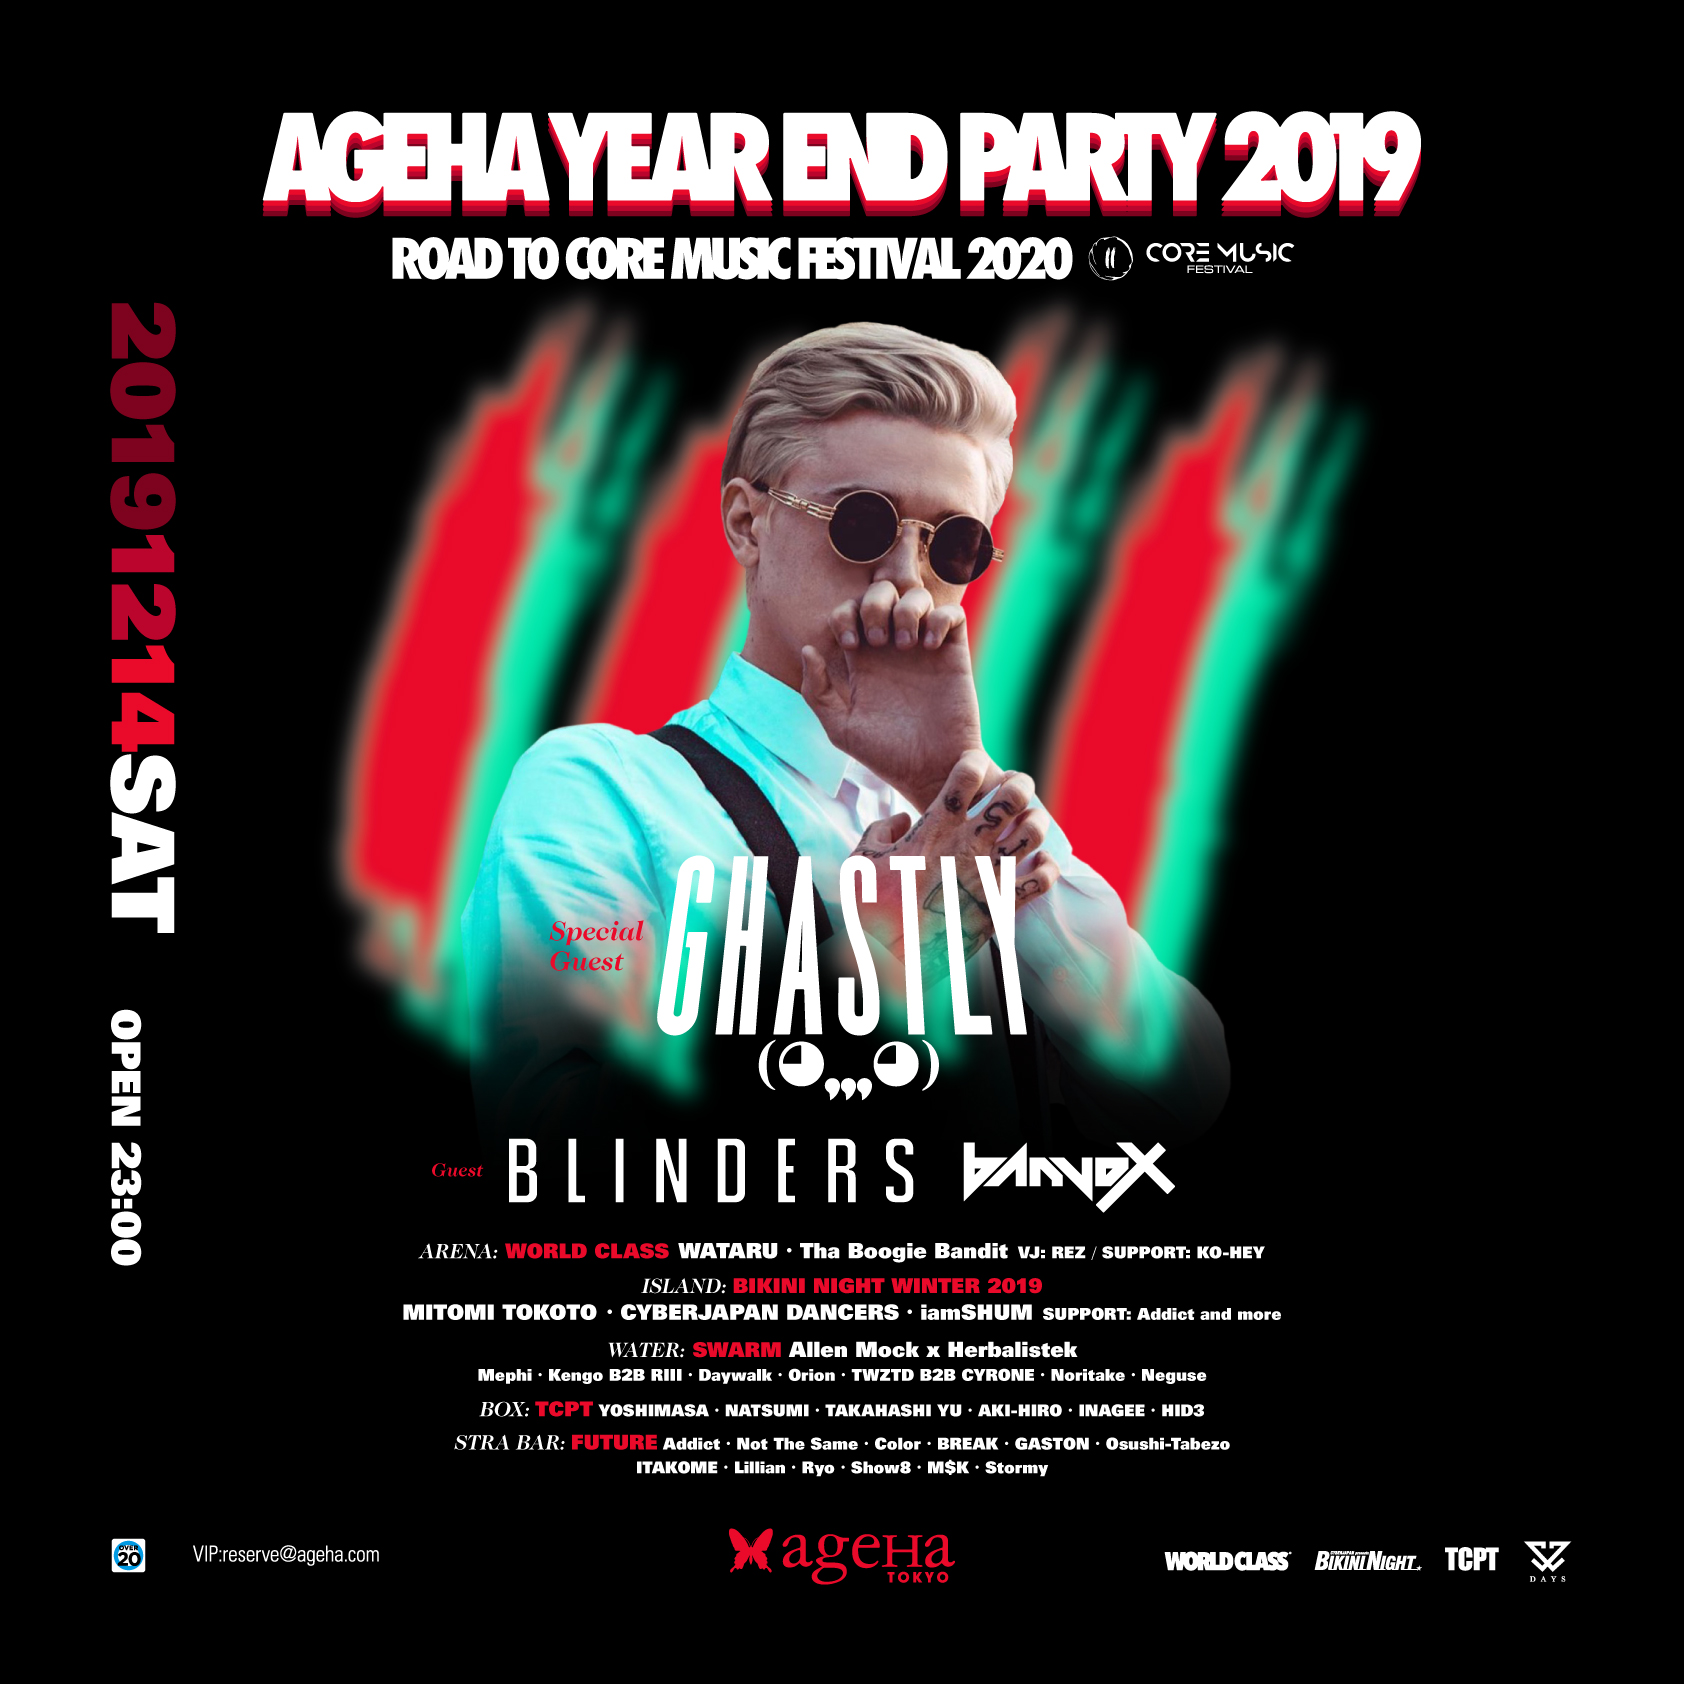 AGEHA YEAR END PARTY 2019 -ROAD TO CORE MUSIC FESTIVAL 2020- Supported by DAYS